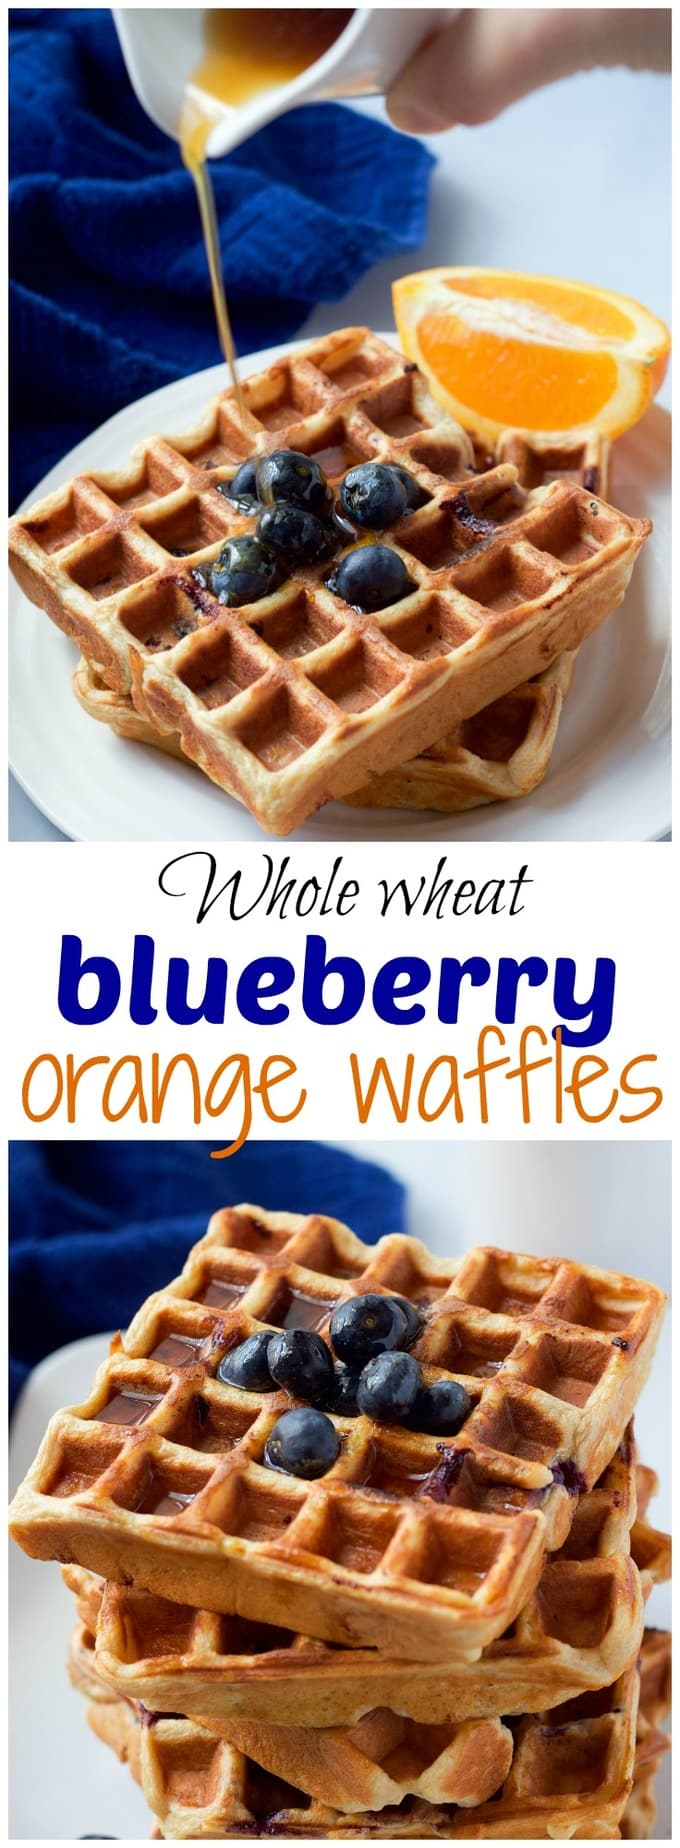 Collage of blueberry orange waffles with a text box in the middle